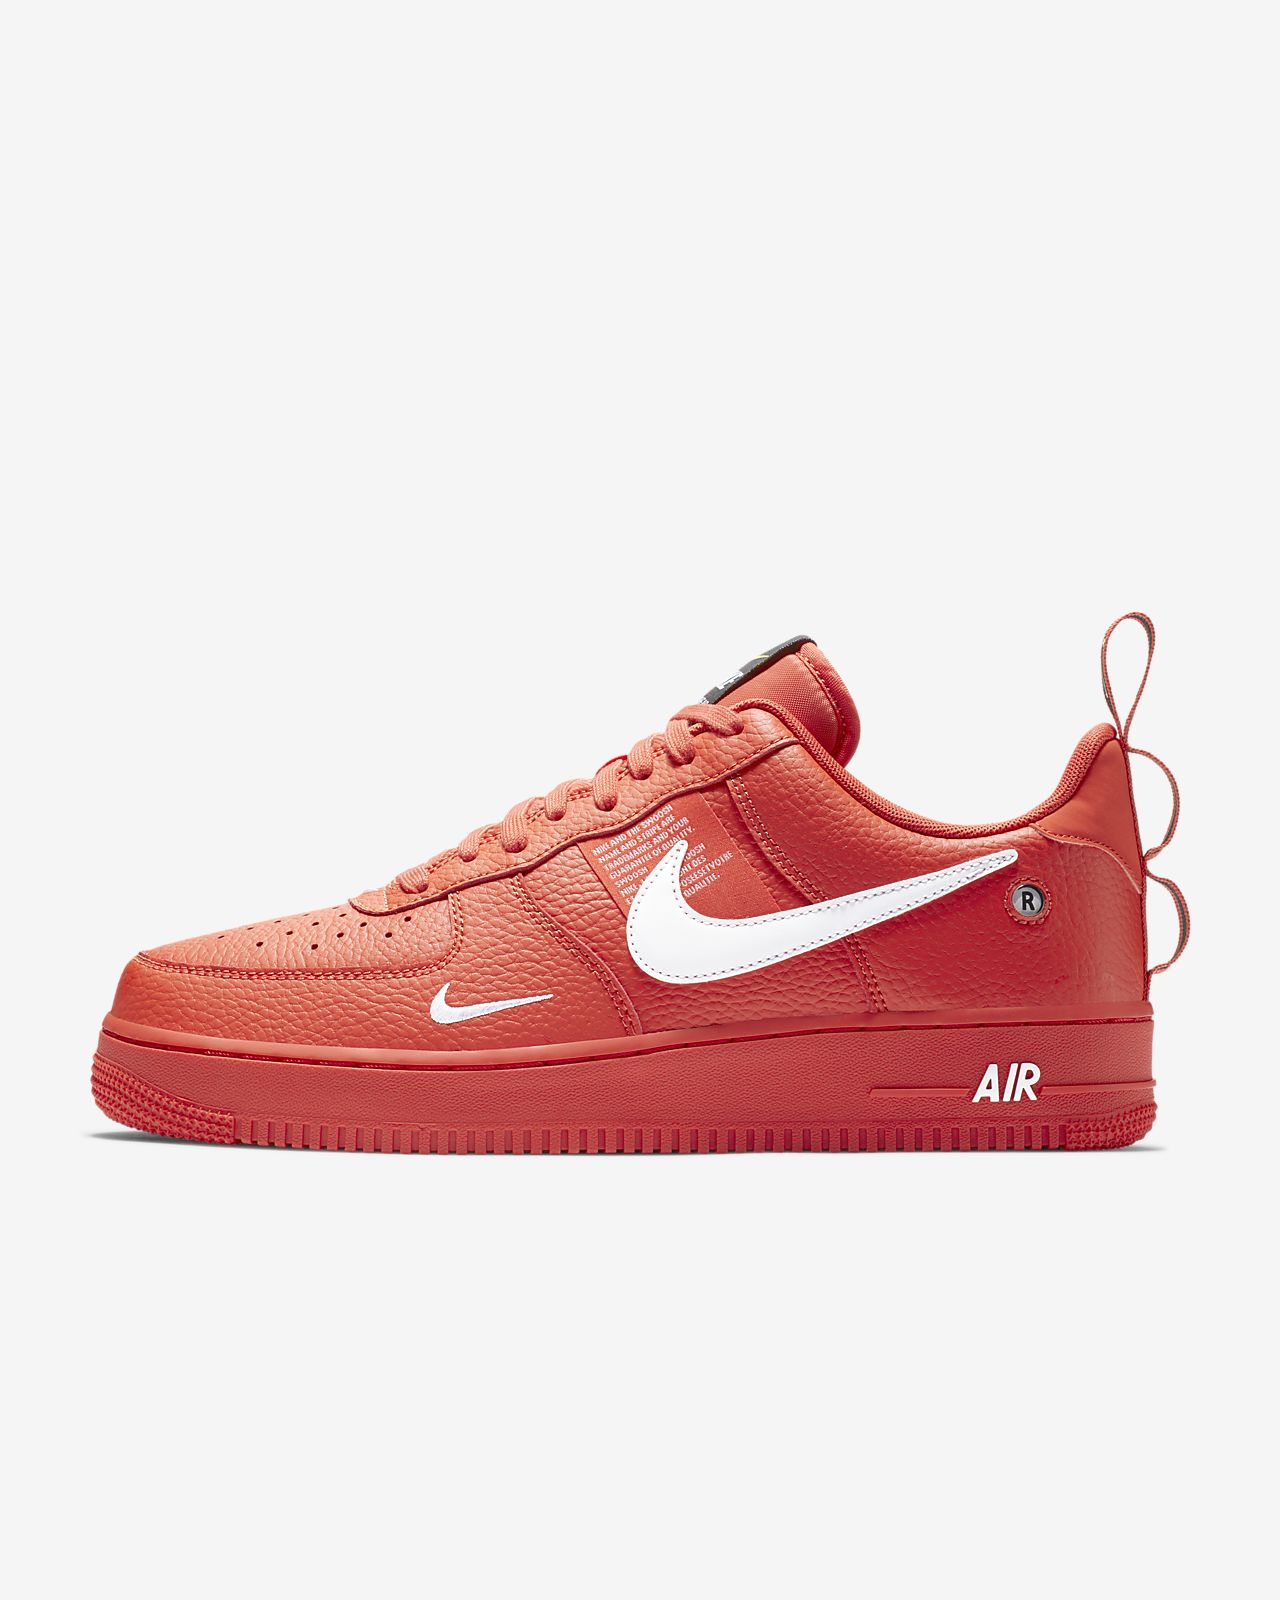 promo code 26f5a 8293f ... Nike Air Force 1 07 LV8 Utility Herrenschuh